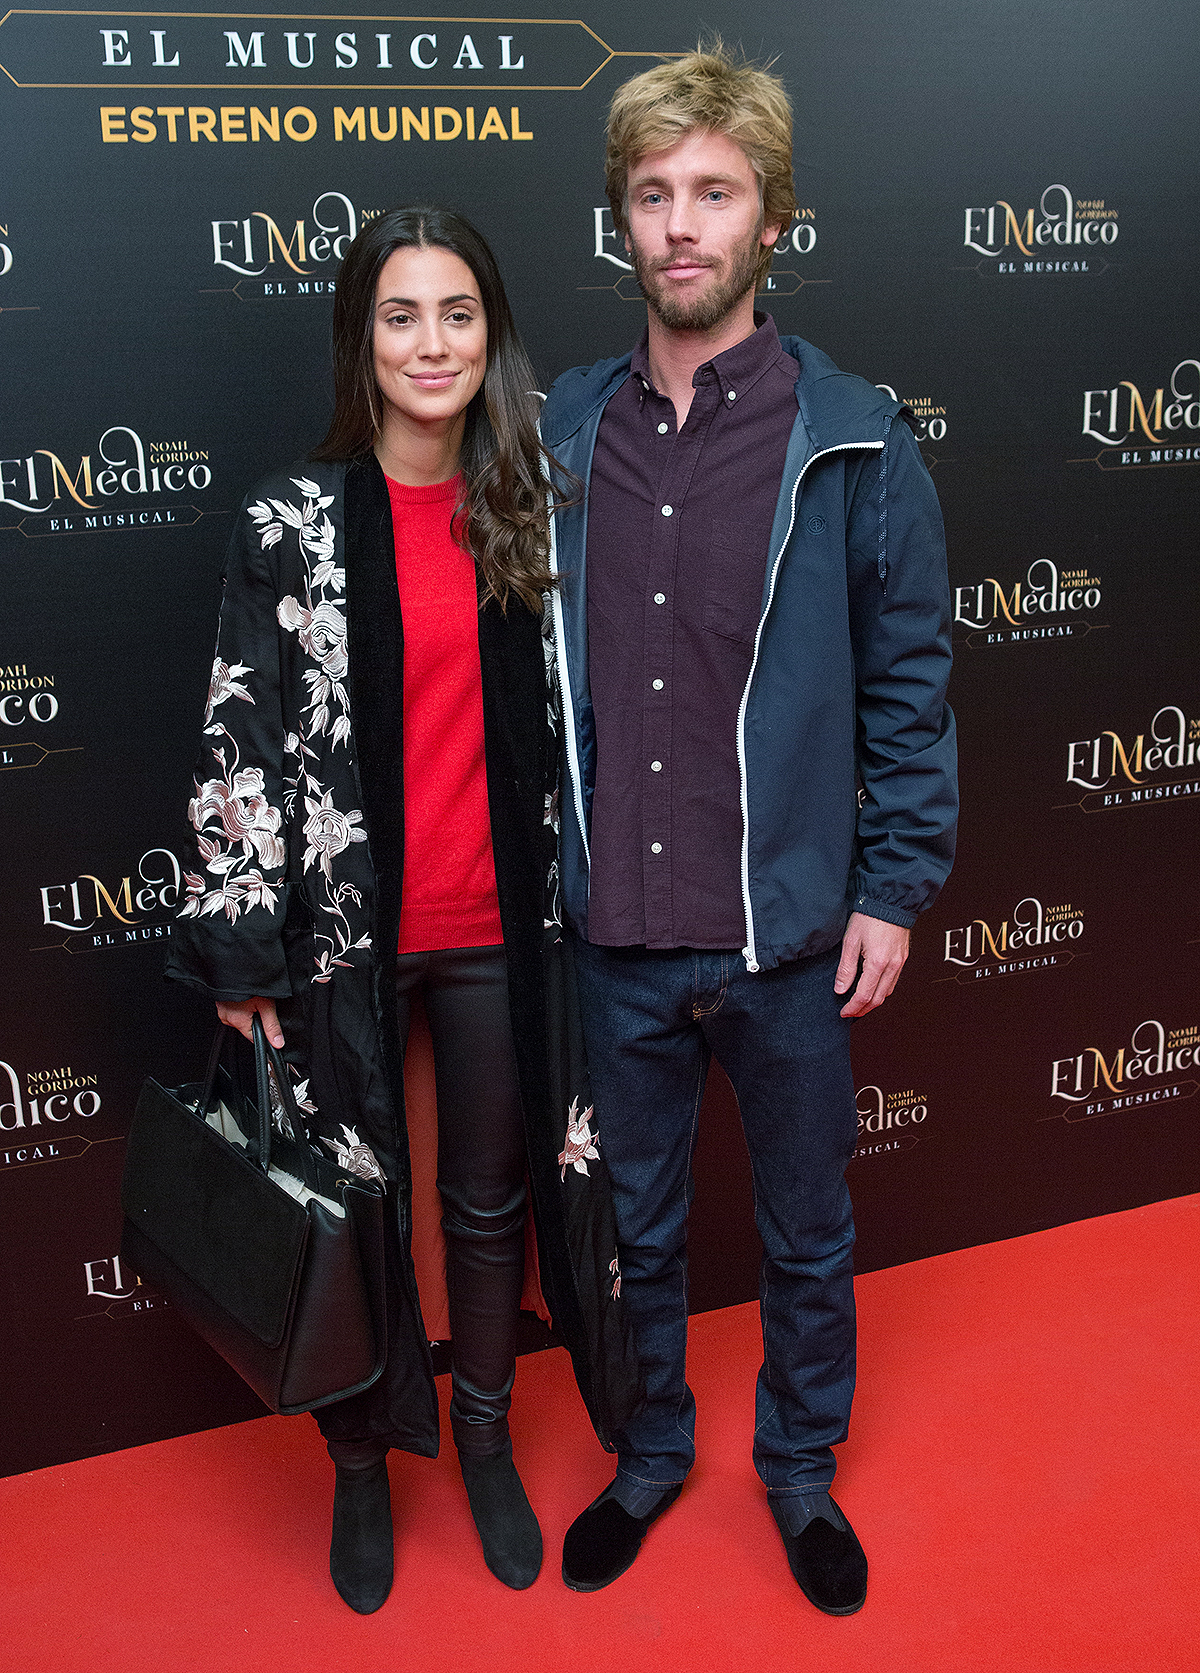 MADRID, SPAIN - OCTOBER 17: Prince Christian of Hannover (R) and wife Alessandra de Osma (L) attend 'El Medico' musical premiere at the Nuevo Apolo Teather on October 17, 2018 in Madrid, Spain.